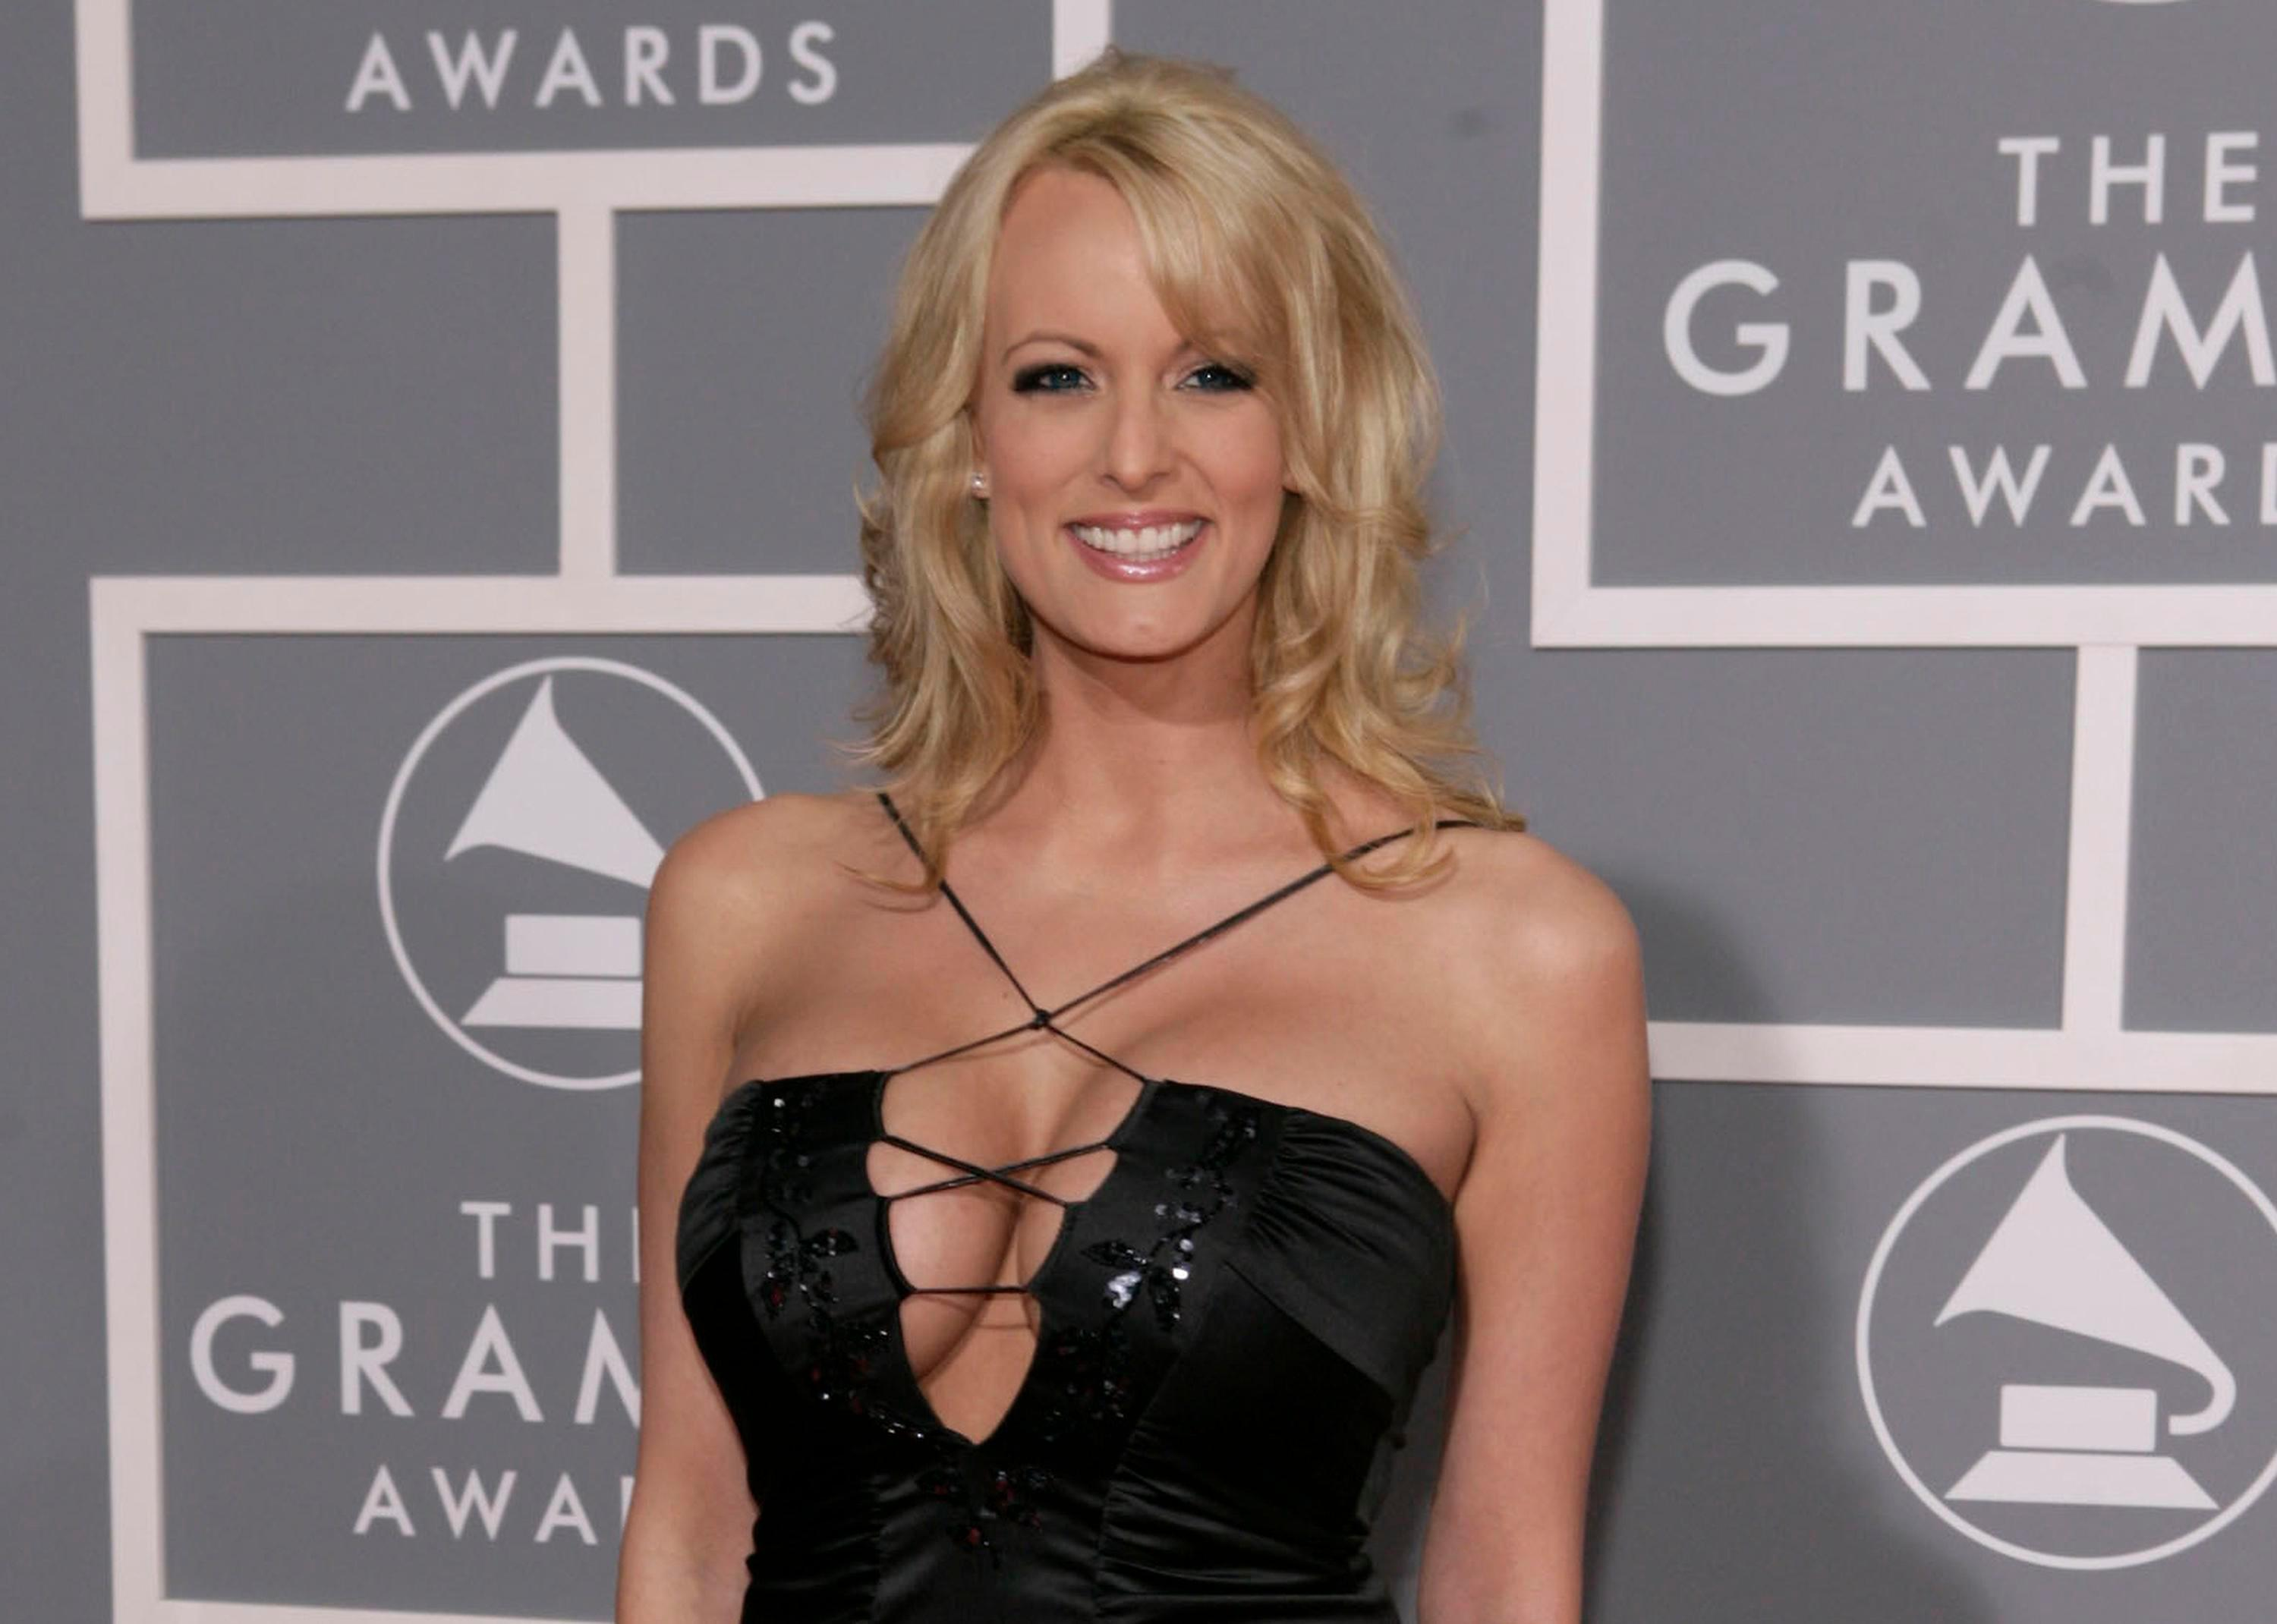 Pornhub star Stormy Daniels was threatened with 'physical harm' over Donald Trump sex claims, her lawyer says